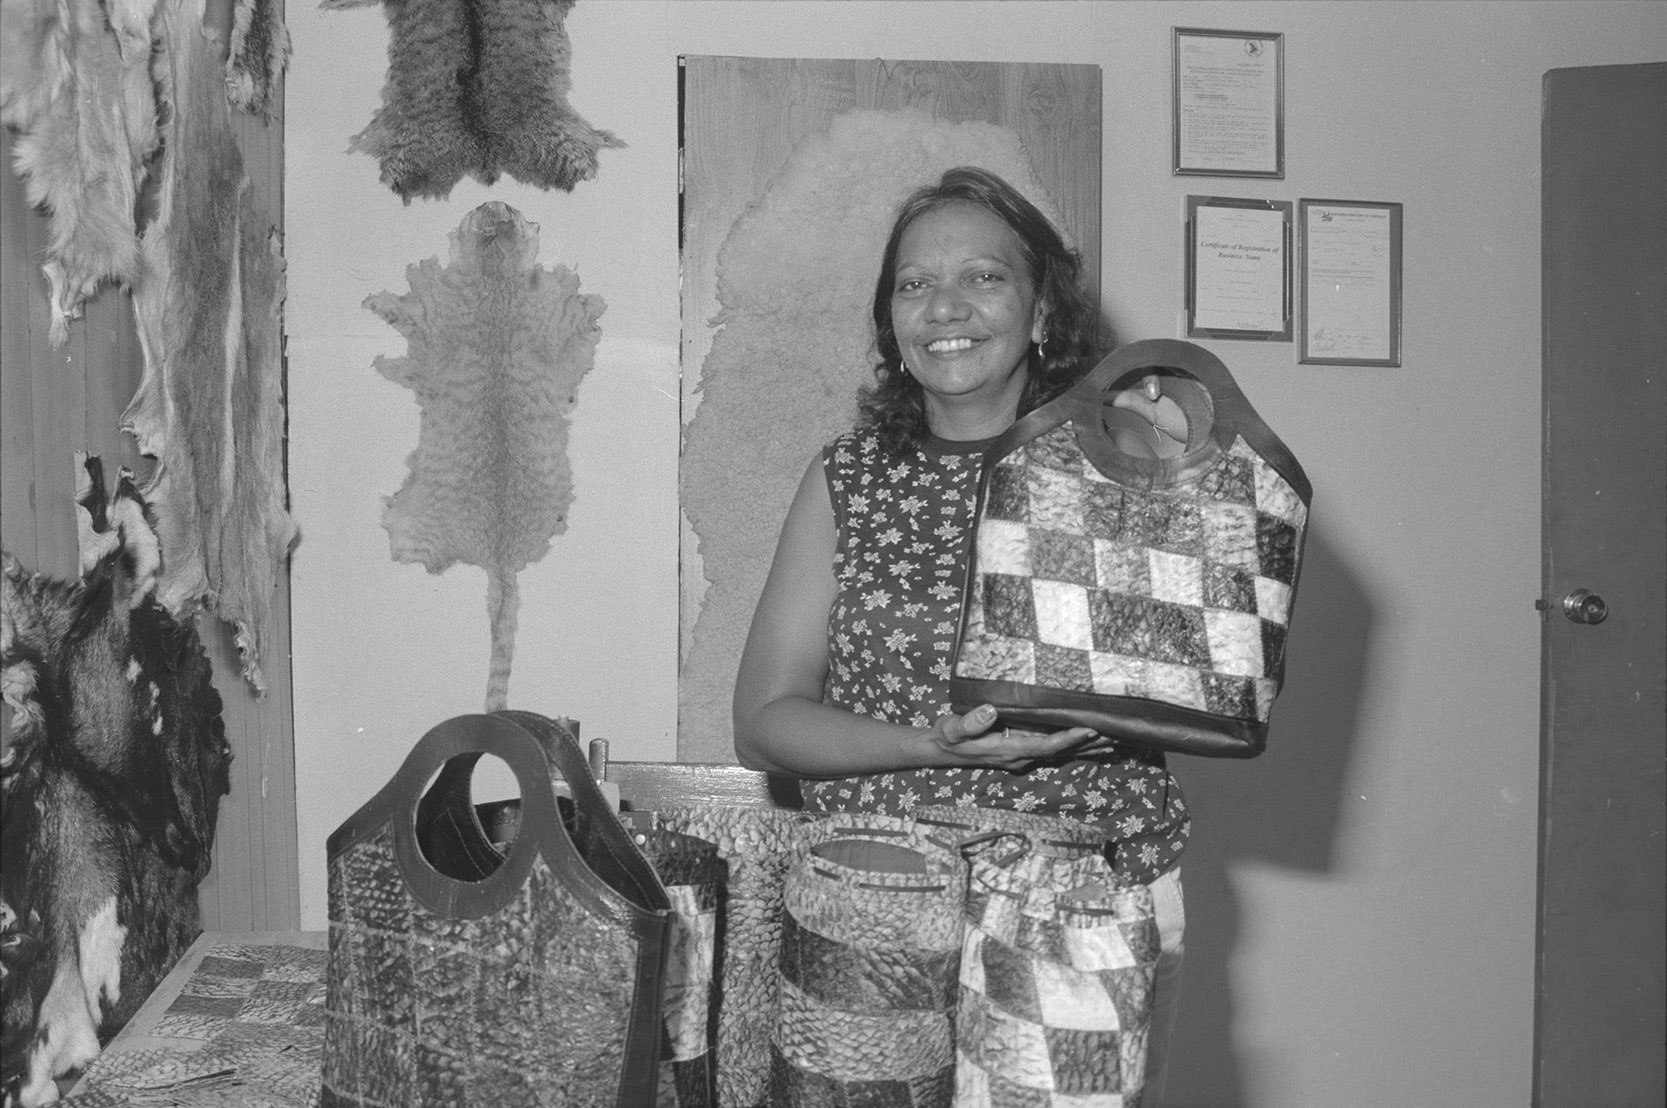 Industry, fish hide farming products, Barramundi skin fashion accessories, 2 February 1990<br />Image courtesy of Library & Archives NT,  Department of the Chief Minister, NTRS 3823 P1, Box 11, BW2881, Image 10